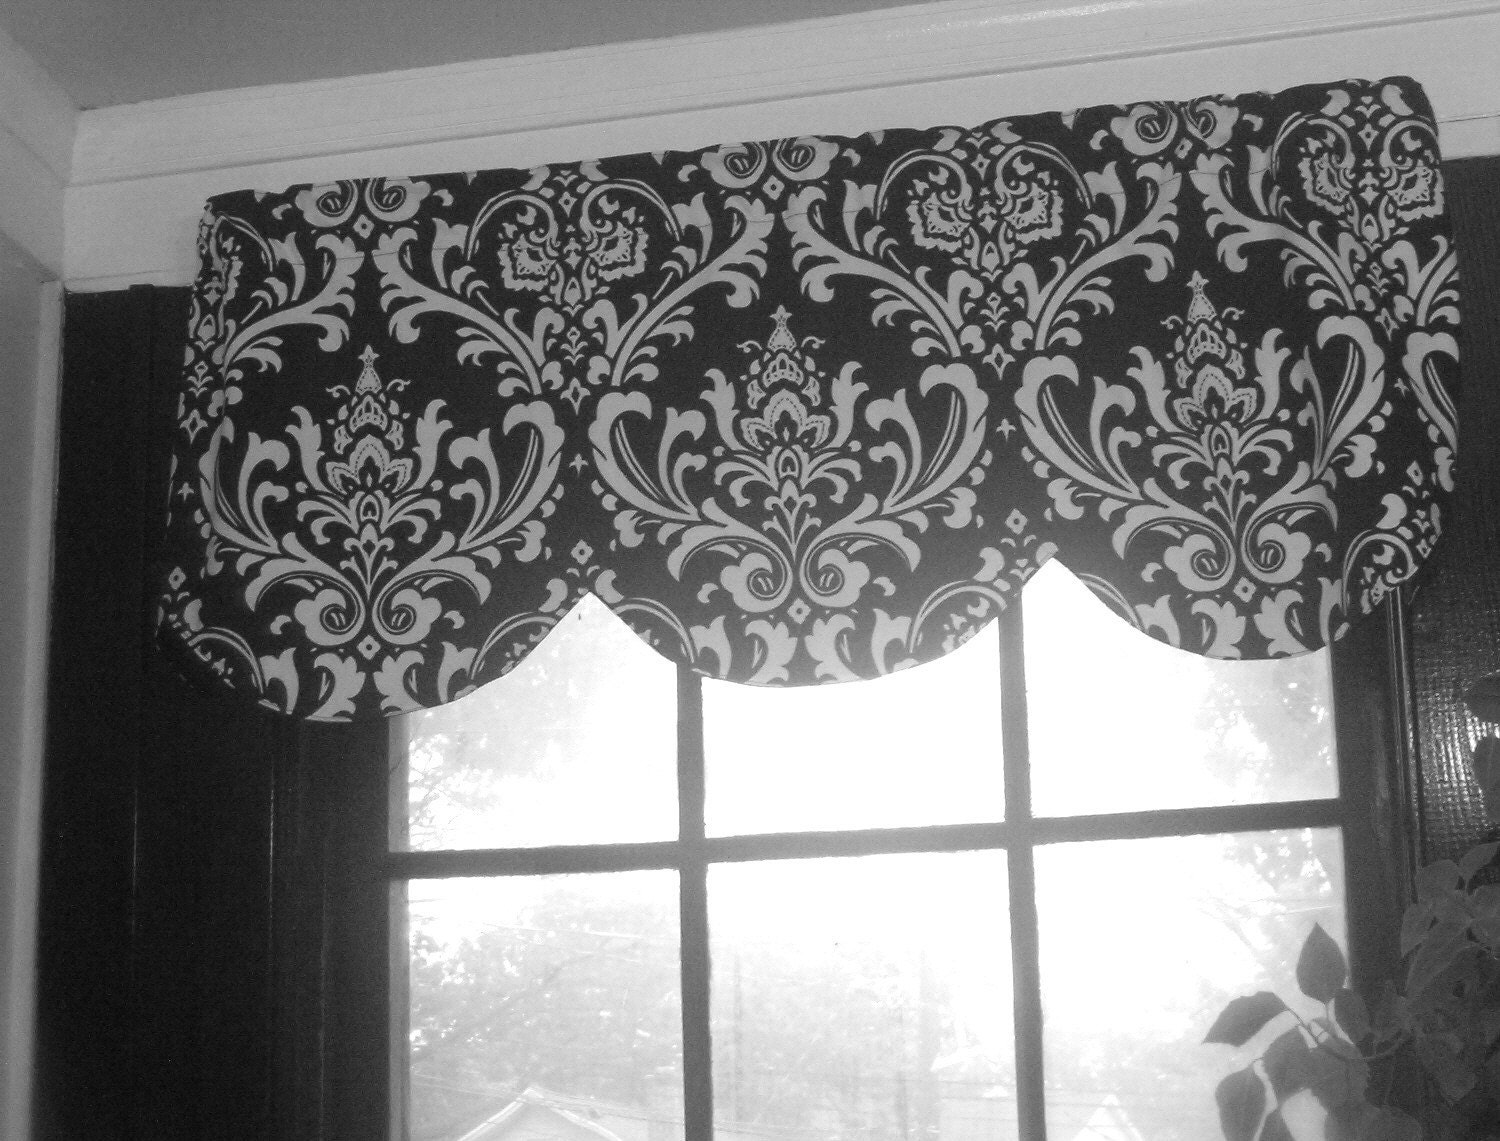 Scallop window valance black white Ozbourne by KirtamDesigns